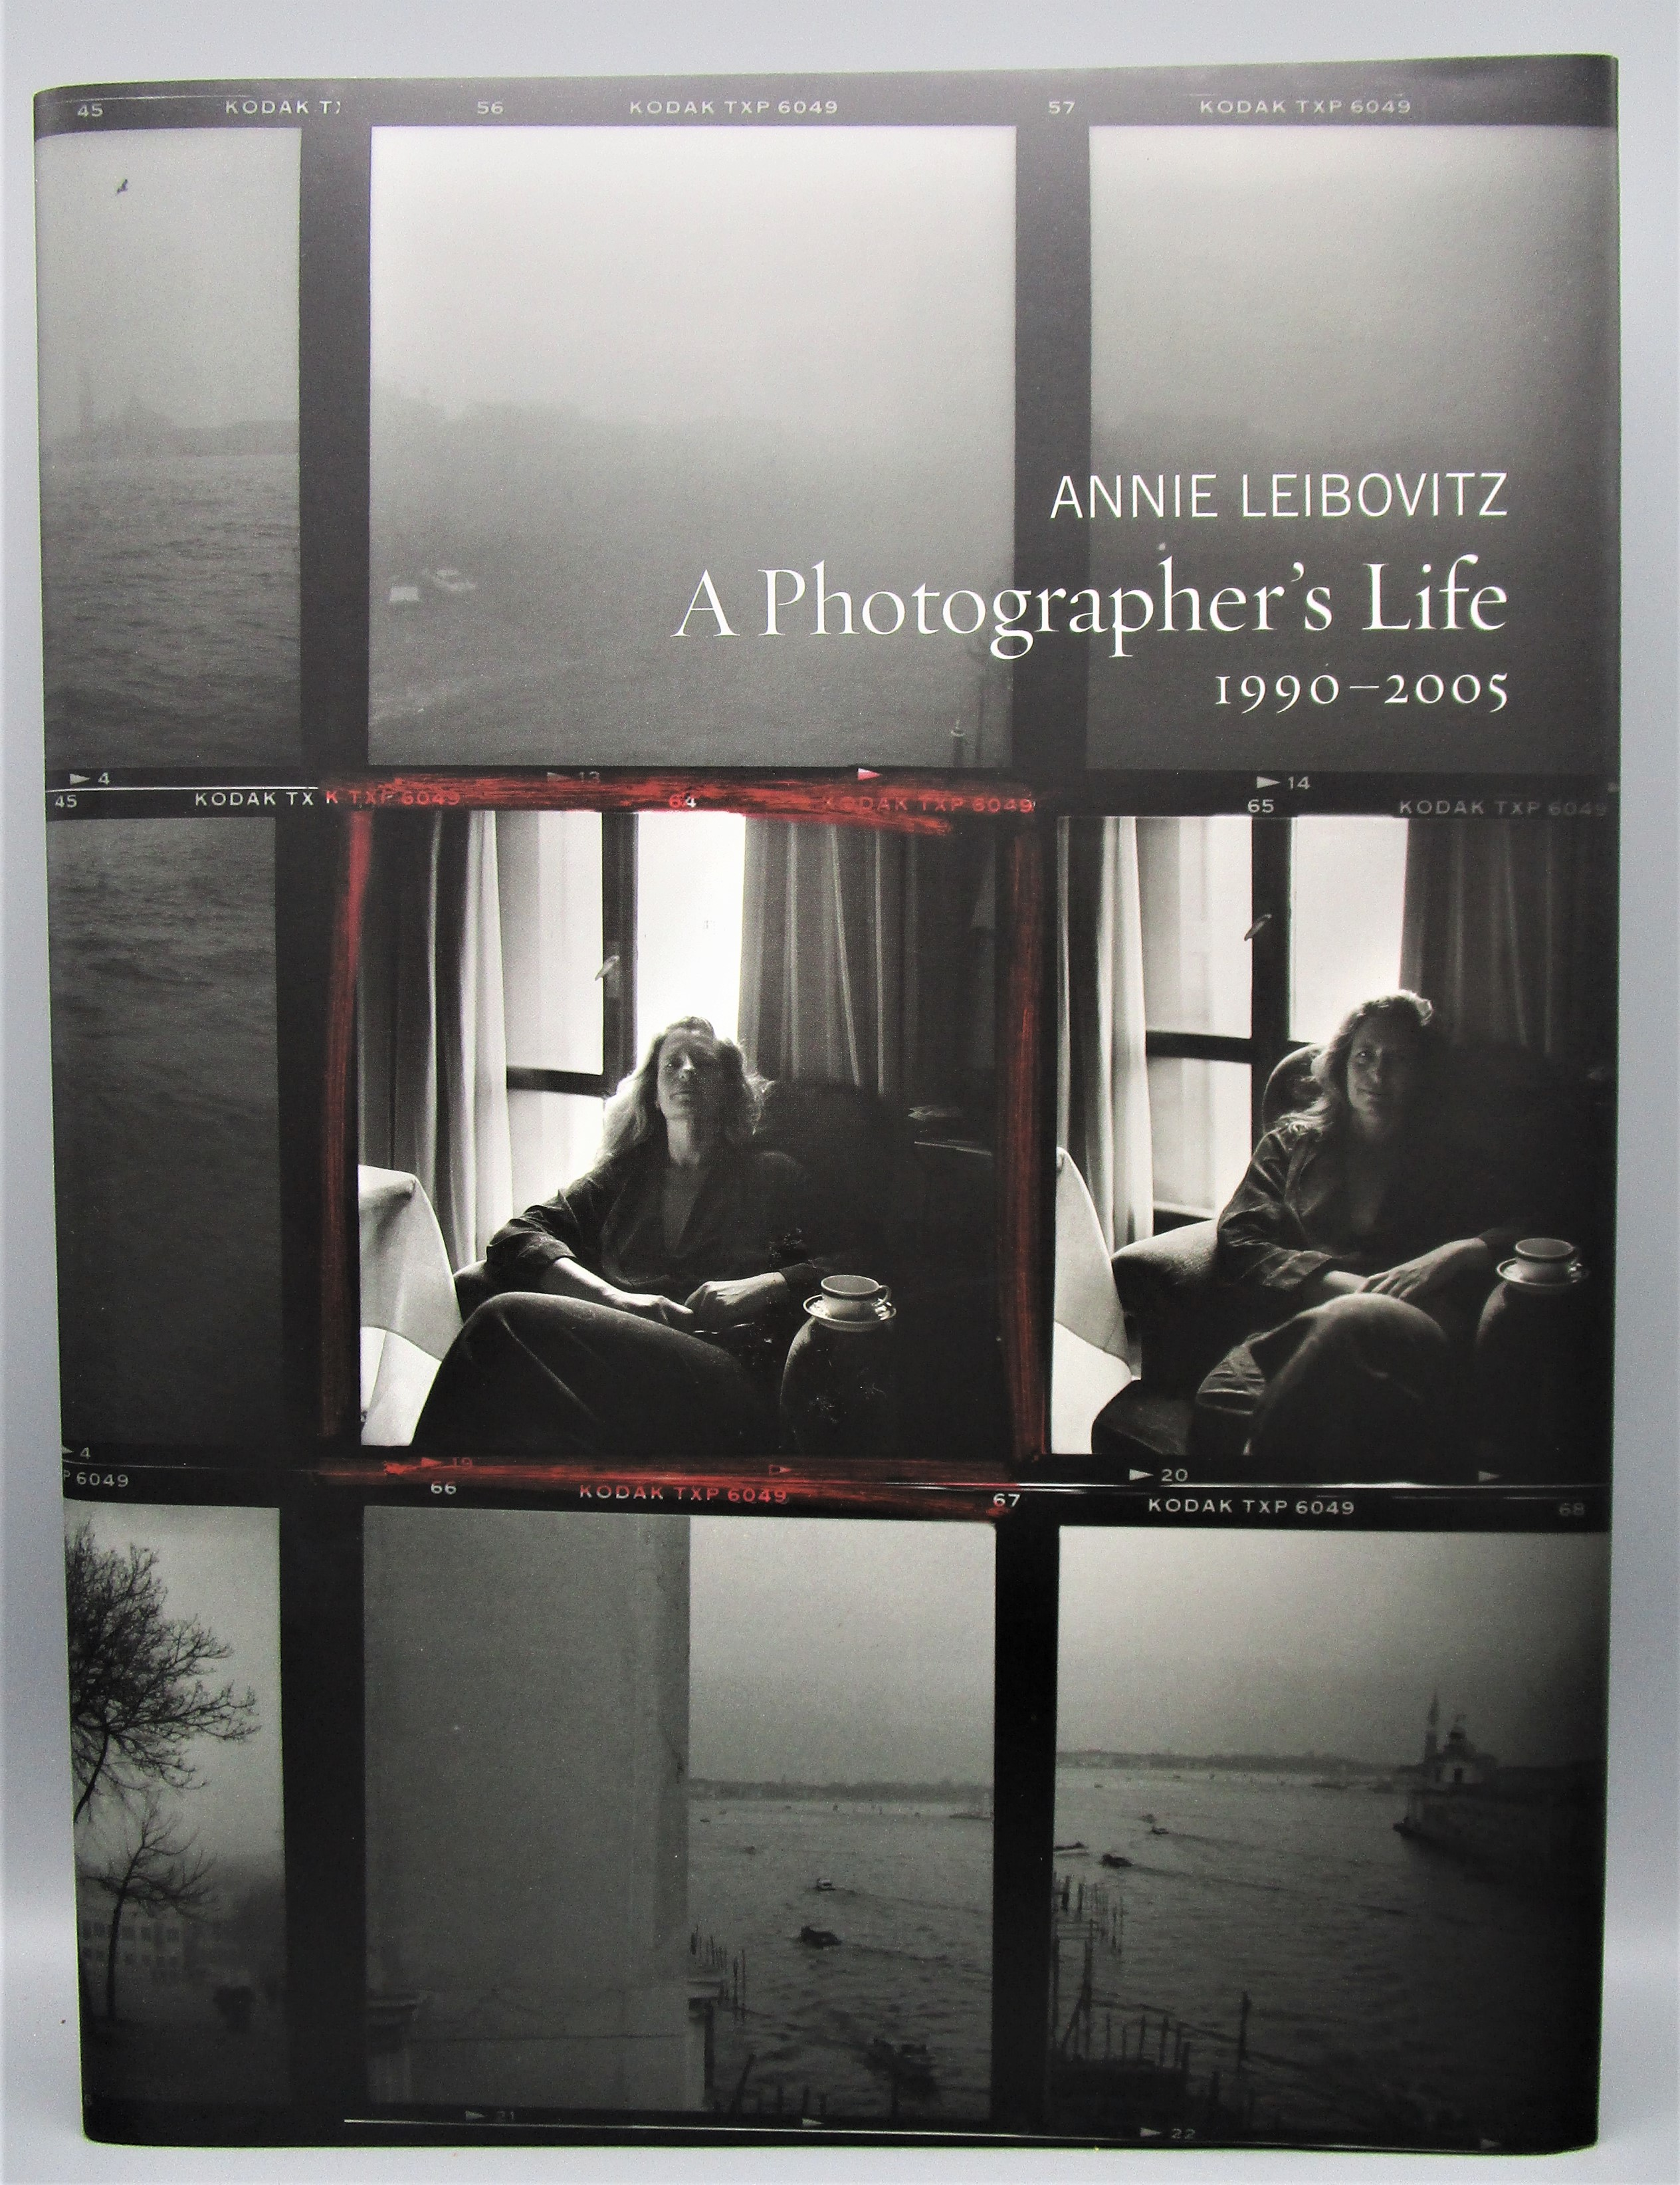 A PHOTOGRAPHER'S LIFE 1990-2005, by Annie Leibovitz - 2006 [Signed w/box]